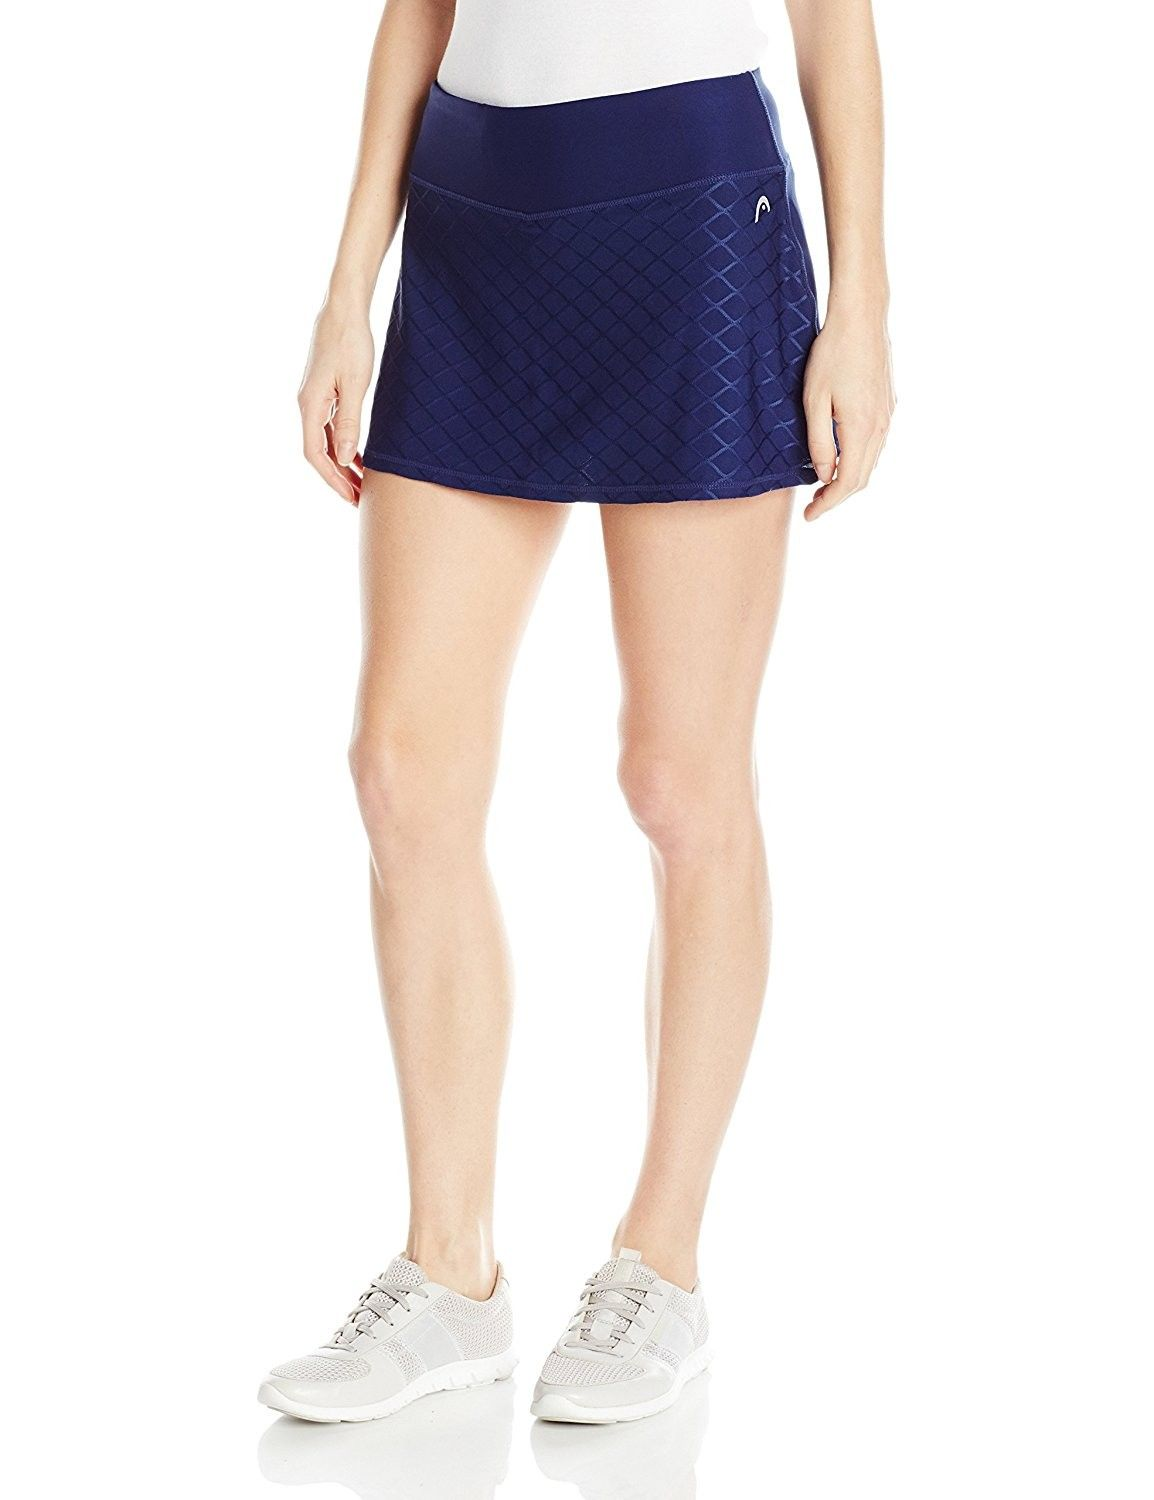 b5e28e5725 Women's Diamond Jaquard Skort - Medieval Blue - C012O2Y43CX,Women's  Clothing, Active, Active Skorts #women #fashion #clothing #style #sexy  #outfits #Active ...